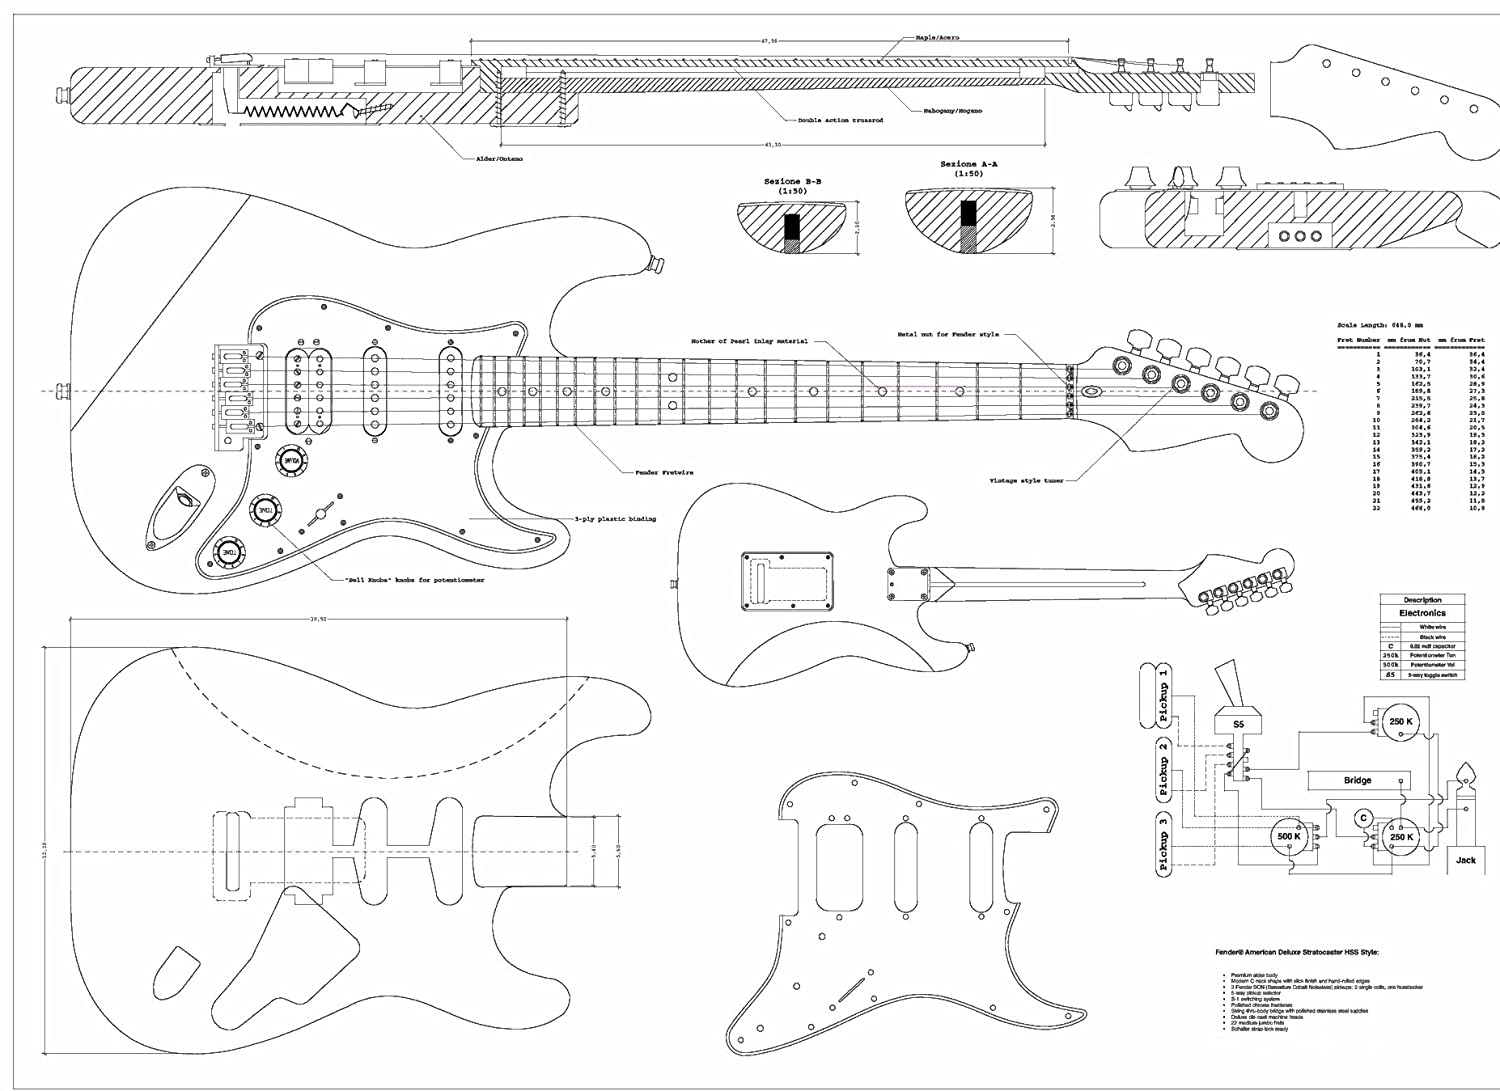 099 2222 000 likewise Fender Stratocaster Explaind Setup Guide in addition Deluxe Reverb Ab763 Schematic likewise Viewtopic as well Wiring Diagram For Warn Winch. on telecaster deluxe wiring diagram